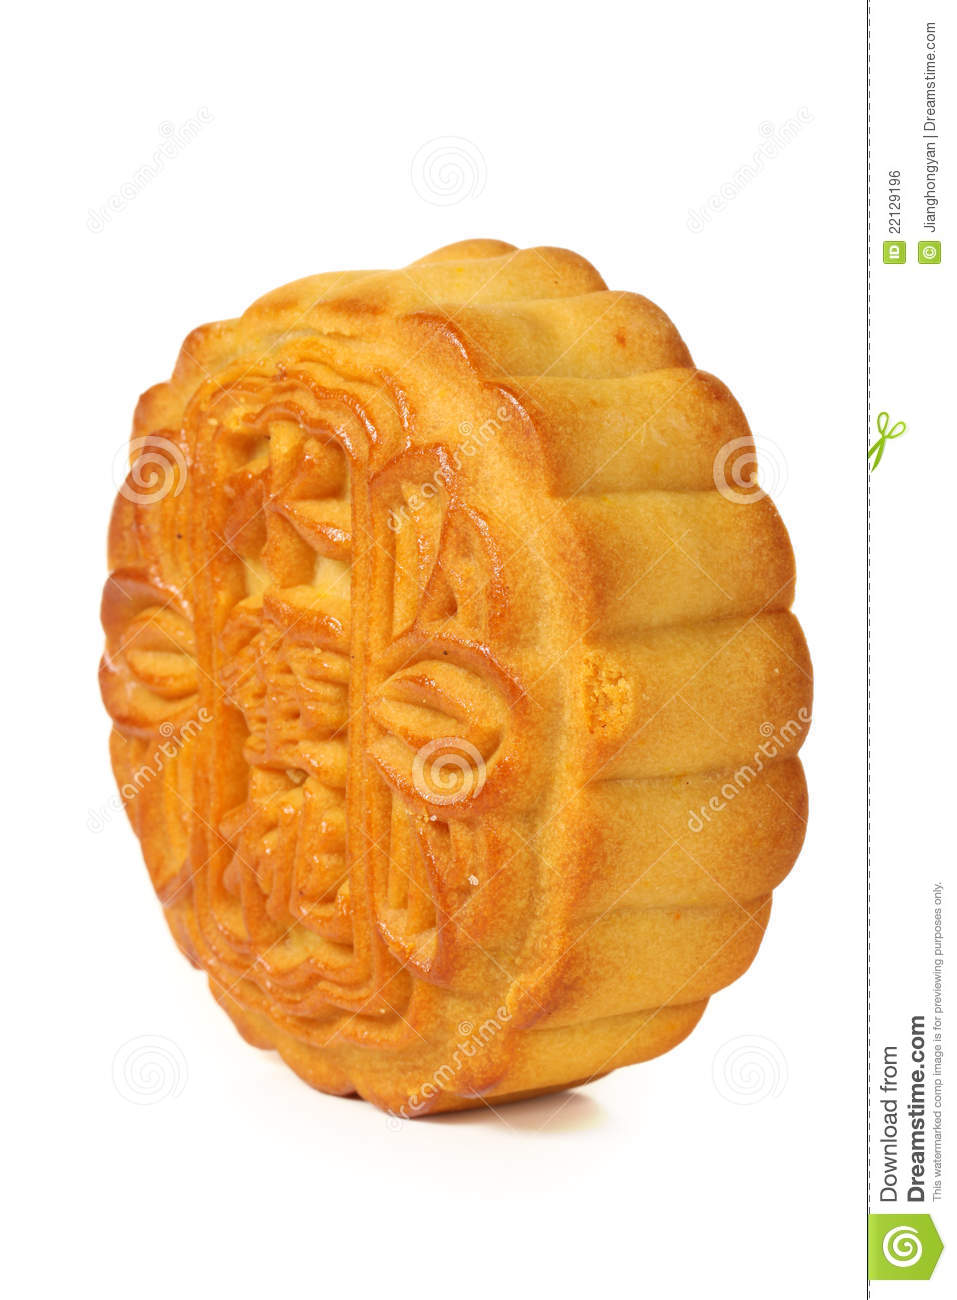 MOON CAKE Royalty Free Stock Image - Image: 22129196